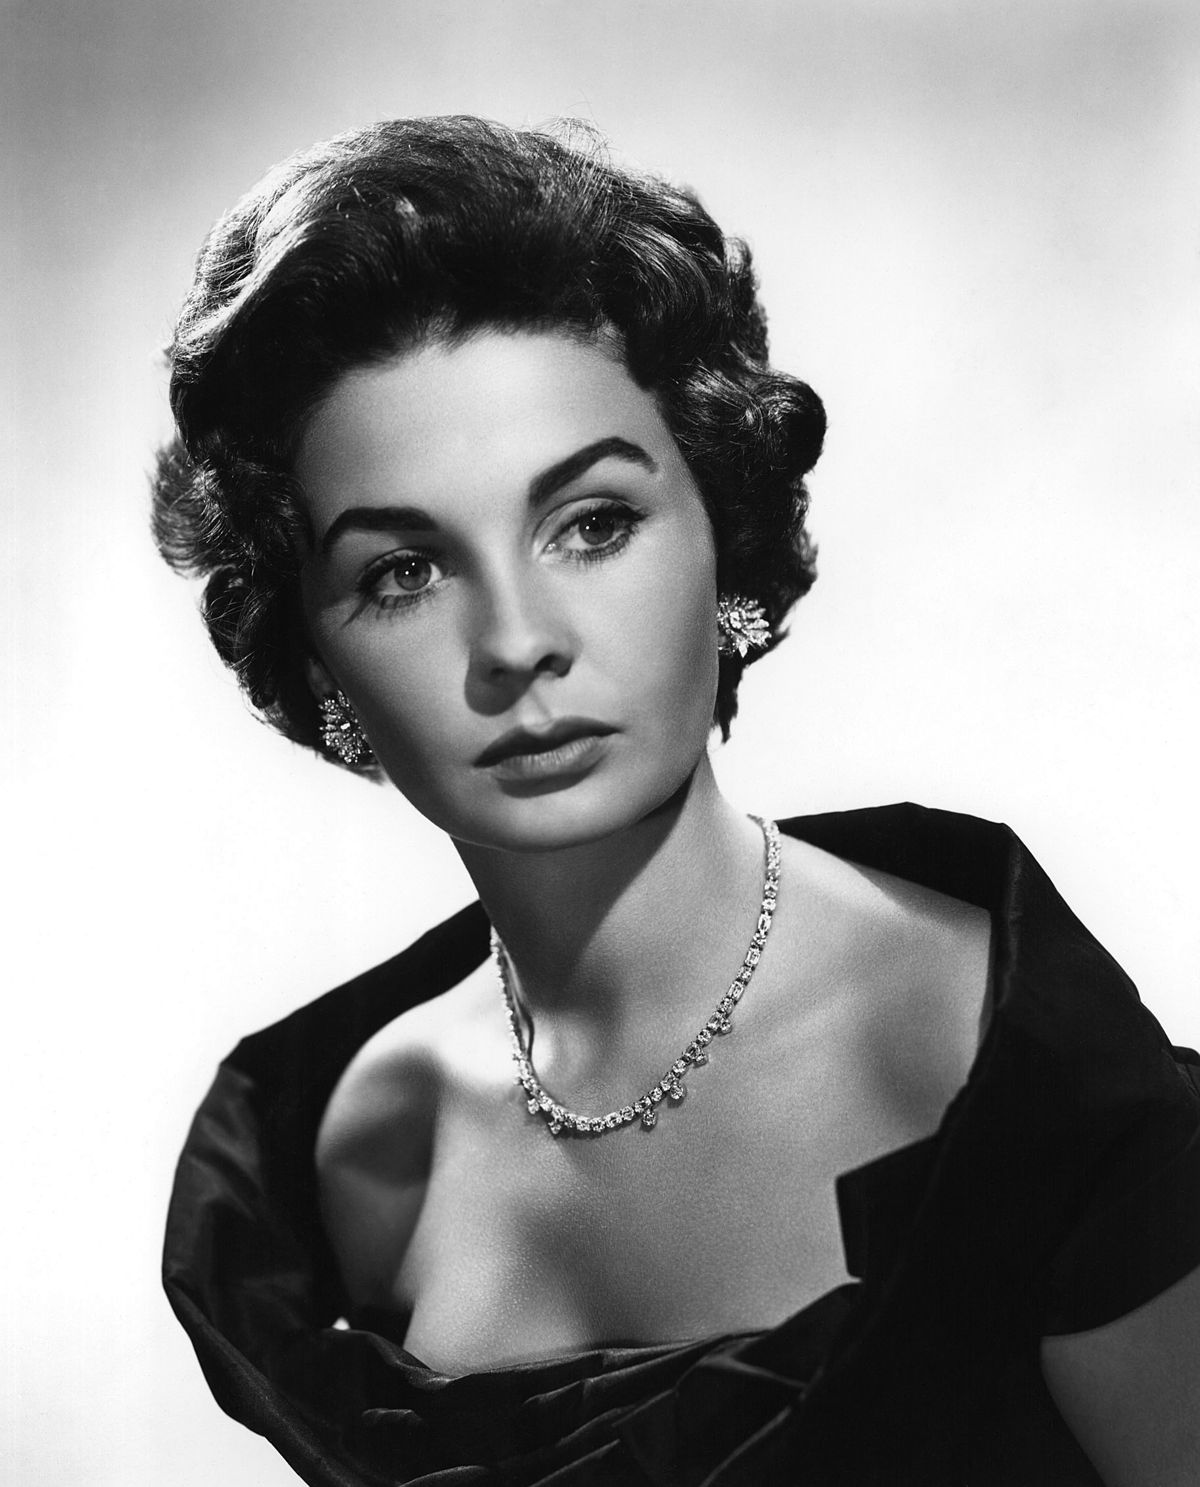 jean simmons photosjean simmons photos, jean simmons and marlon brando, jean simmons stewart granger, jean simmons quotes, jean simmons, jean simmons actress, jean simmons wiki, jean simmons wikipedia, jean simmons thorn birds, jean simmons imdb, jean simmons net worth, jean simmons measurements, jean simmons stewart granger wedding, jean simmons grave, jean simmons tongue, jean simmons son, jean simmons addiction, jean simmons daughters